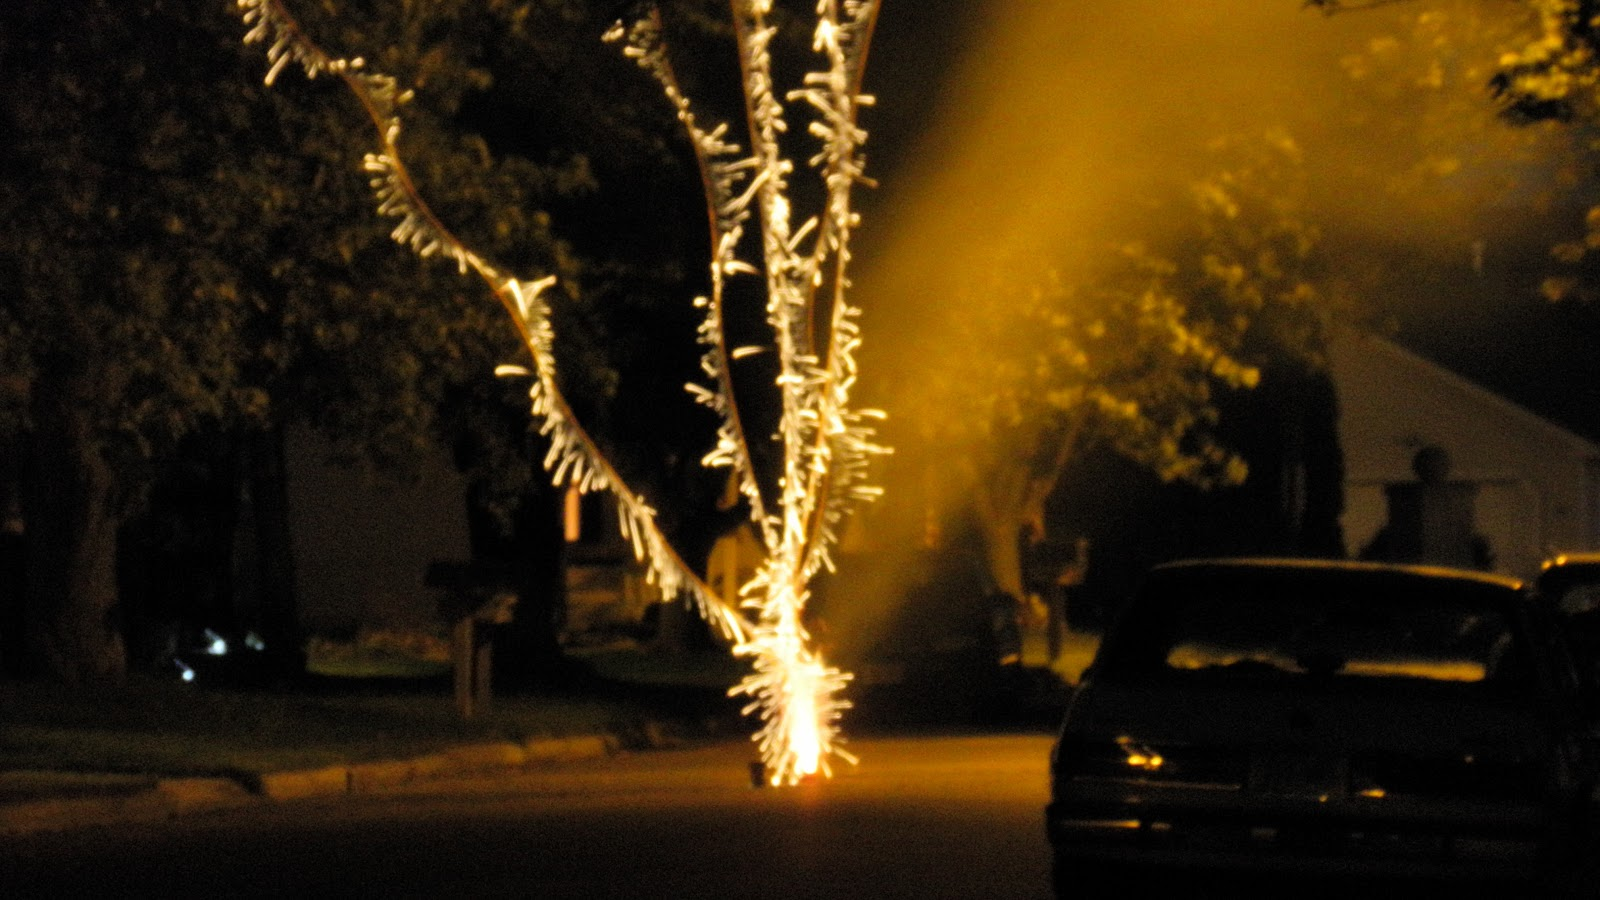 [Fireworks%2520Neighborhood%2520July%25202%252011%2520%25281%2529%255B2%255D.jpg]